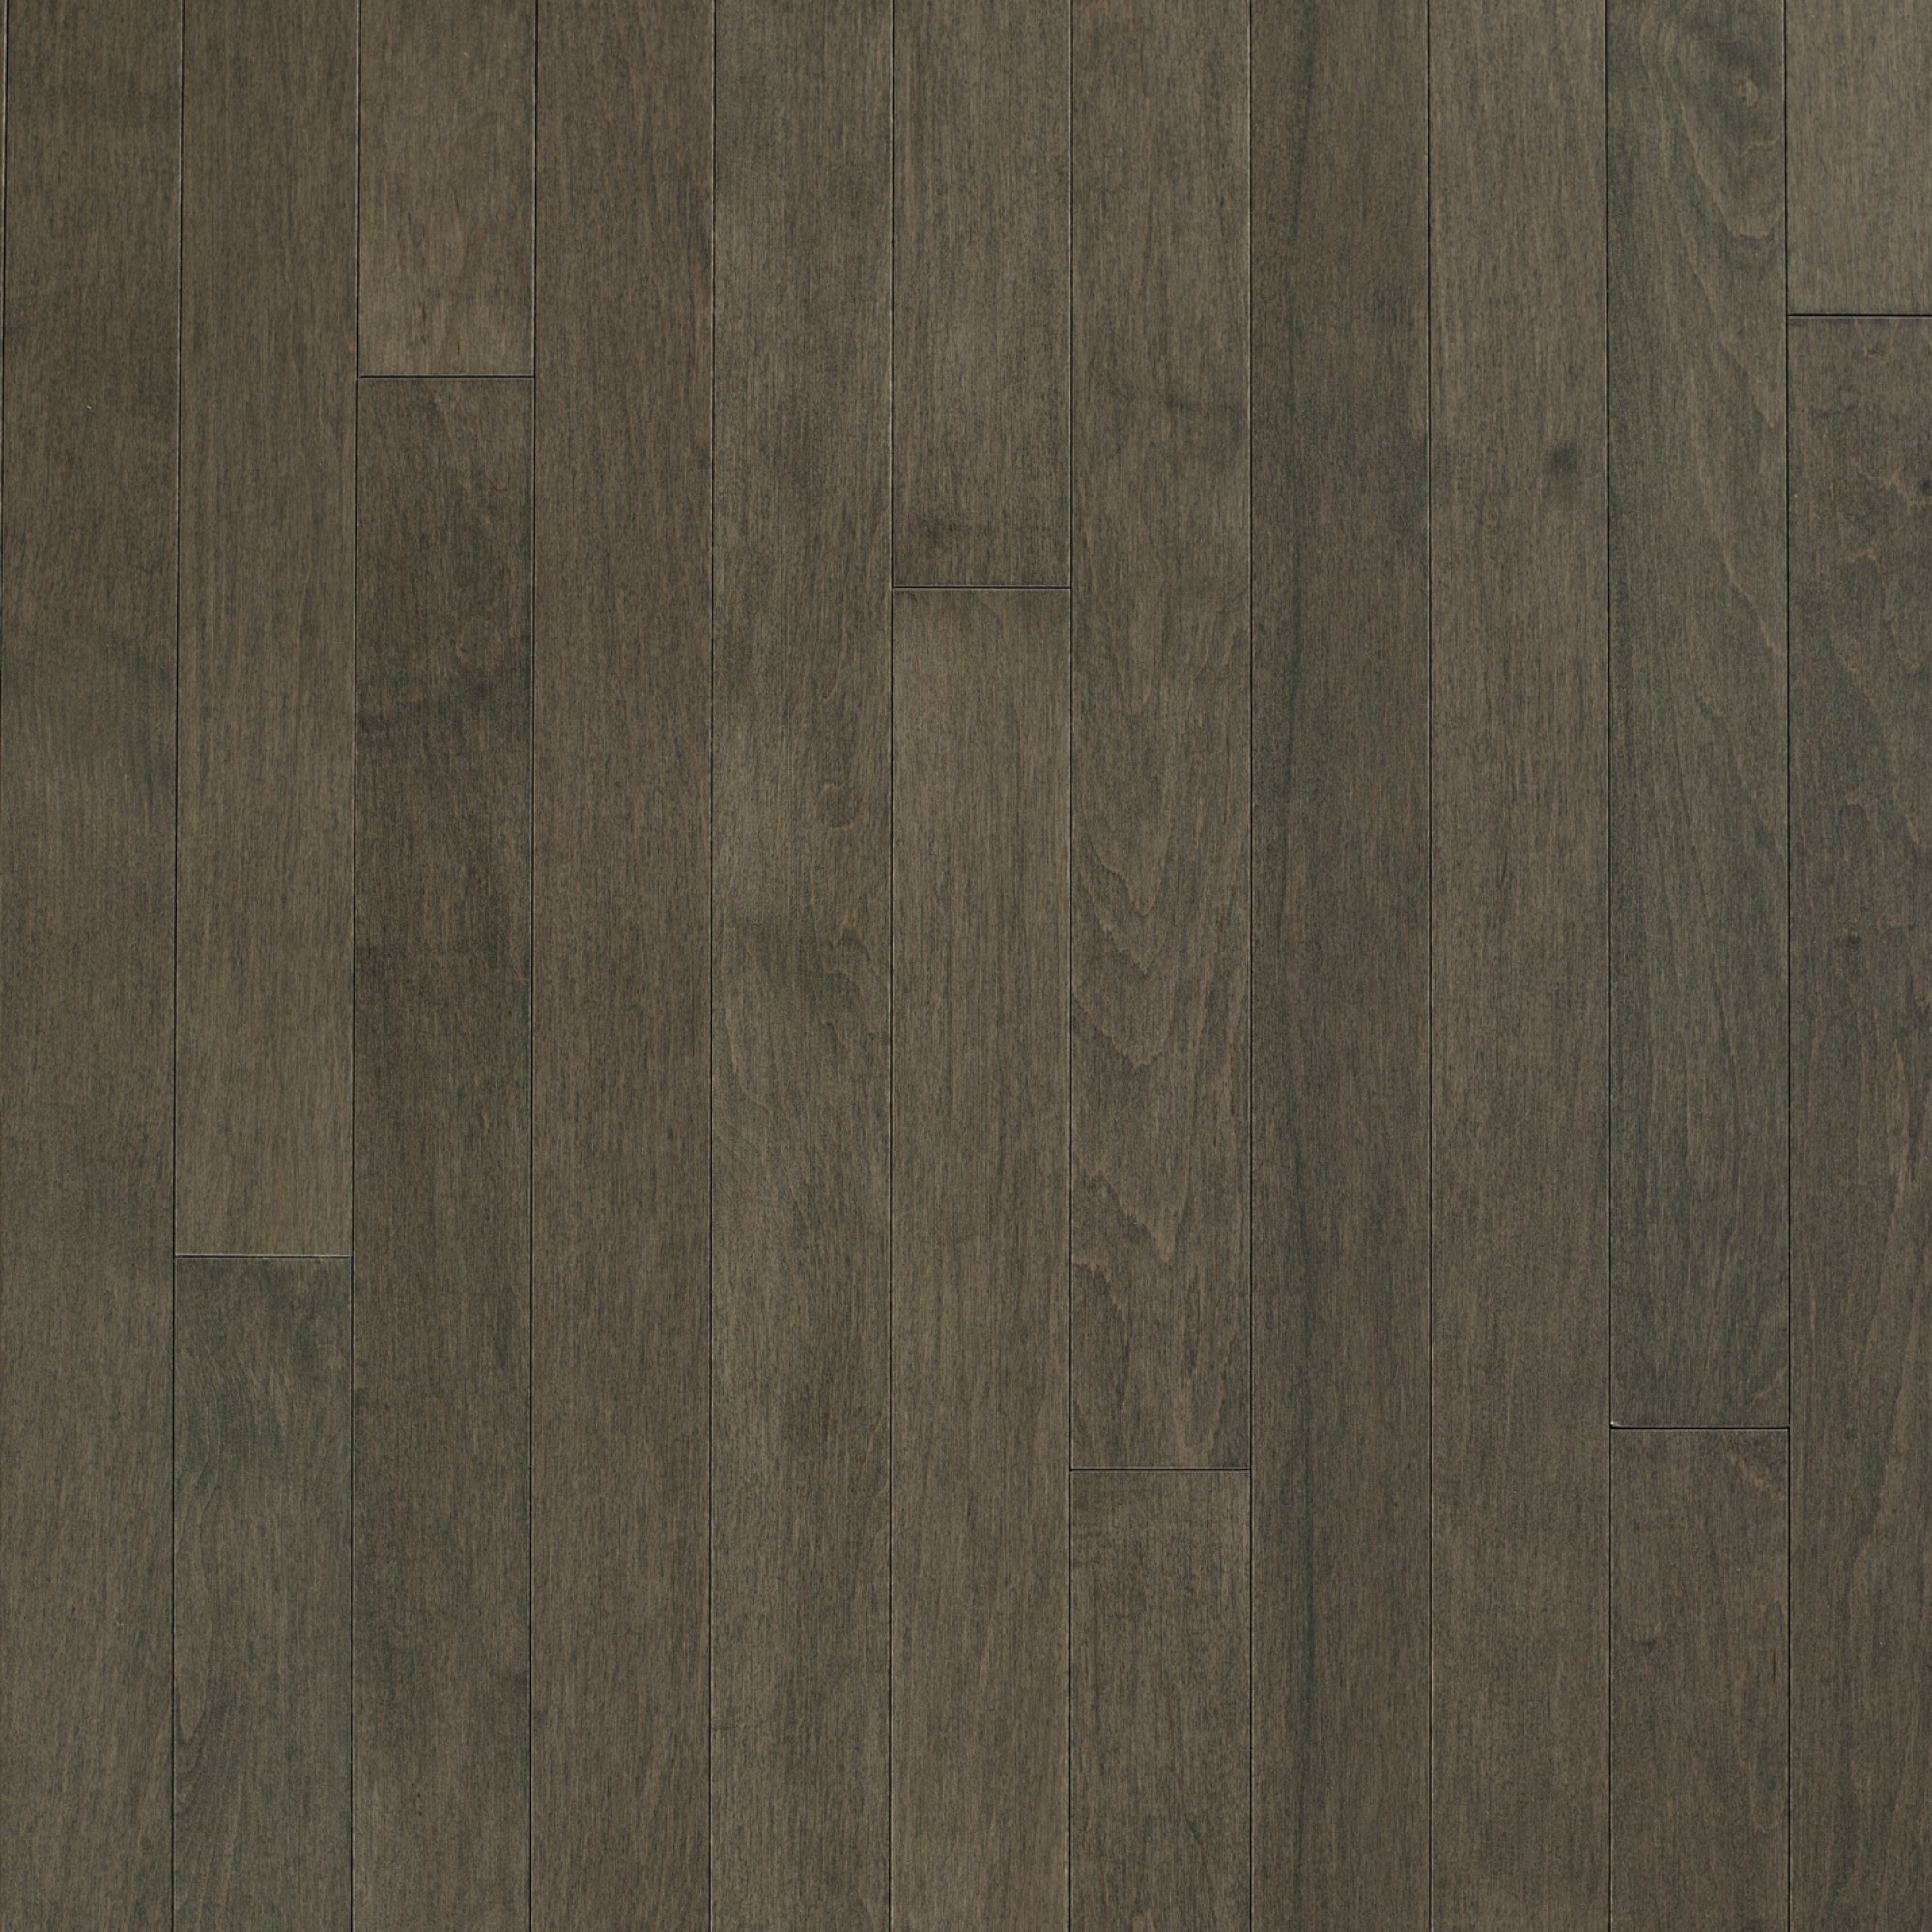 Hand Scraped Maple Oxford By Vintage Hardwood Flooring: Vintage Hardwood Flooring